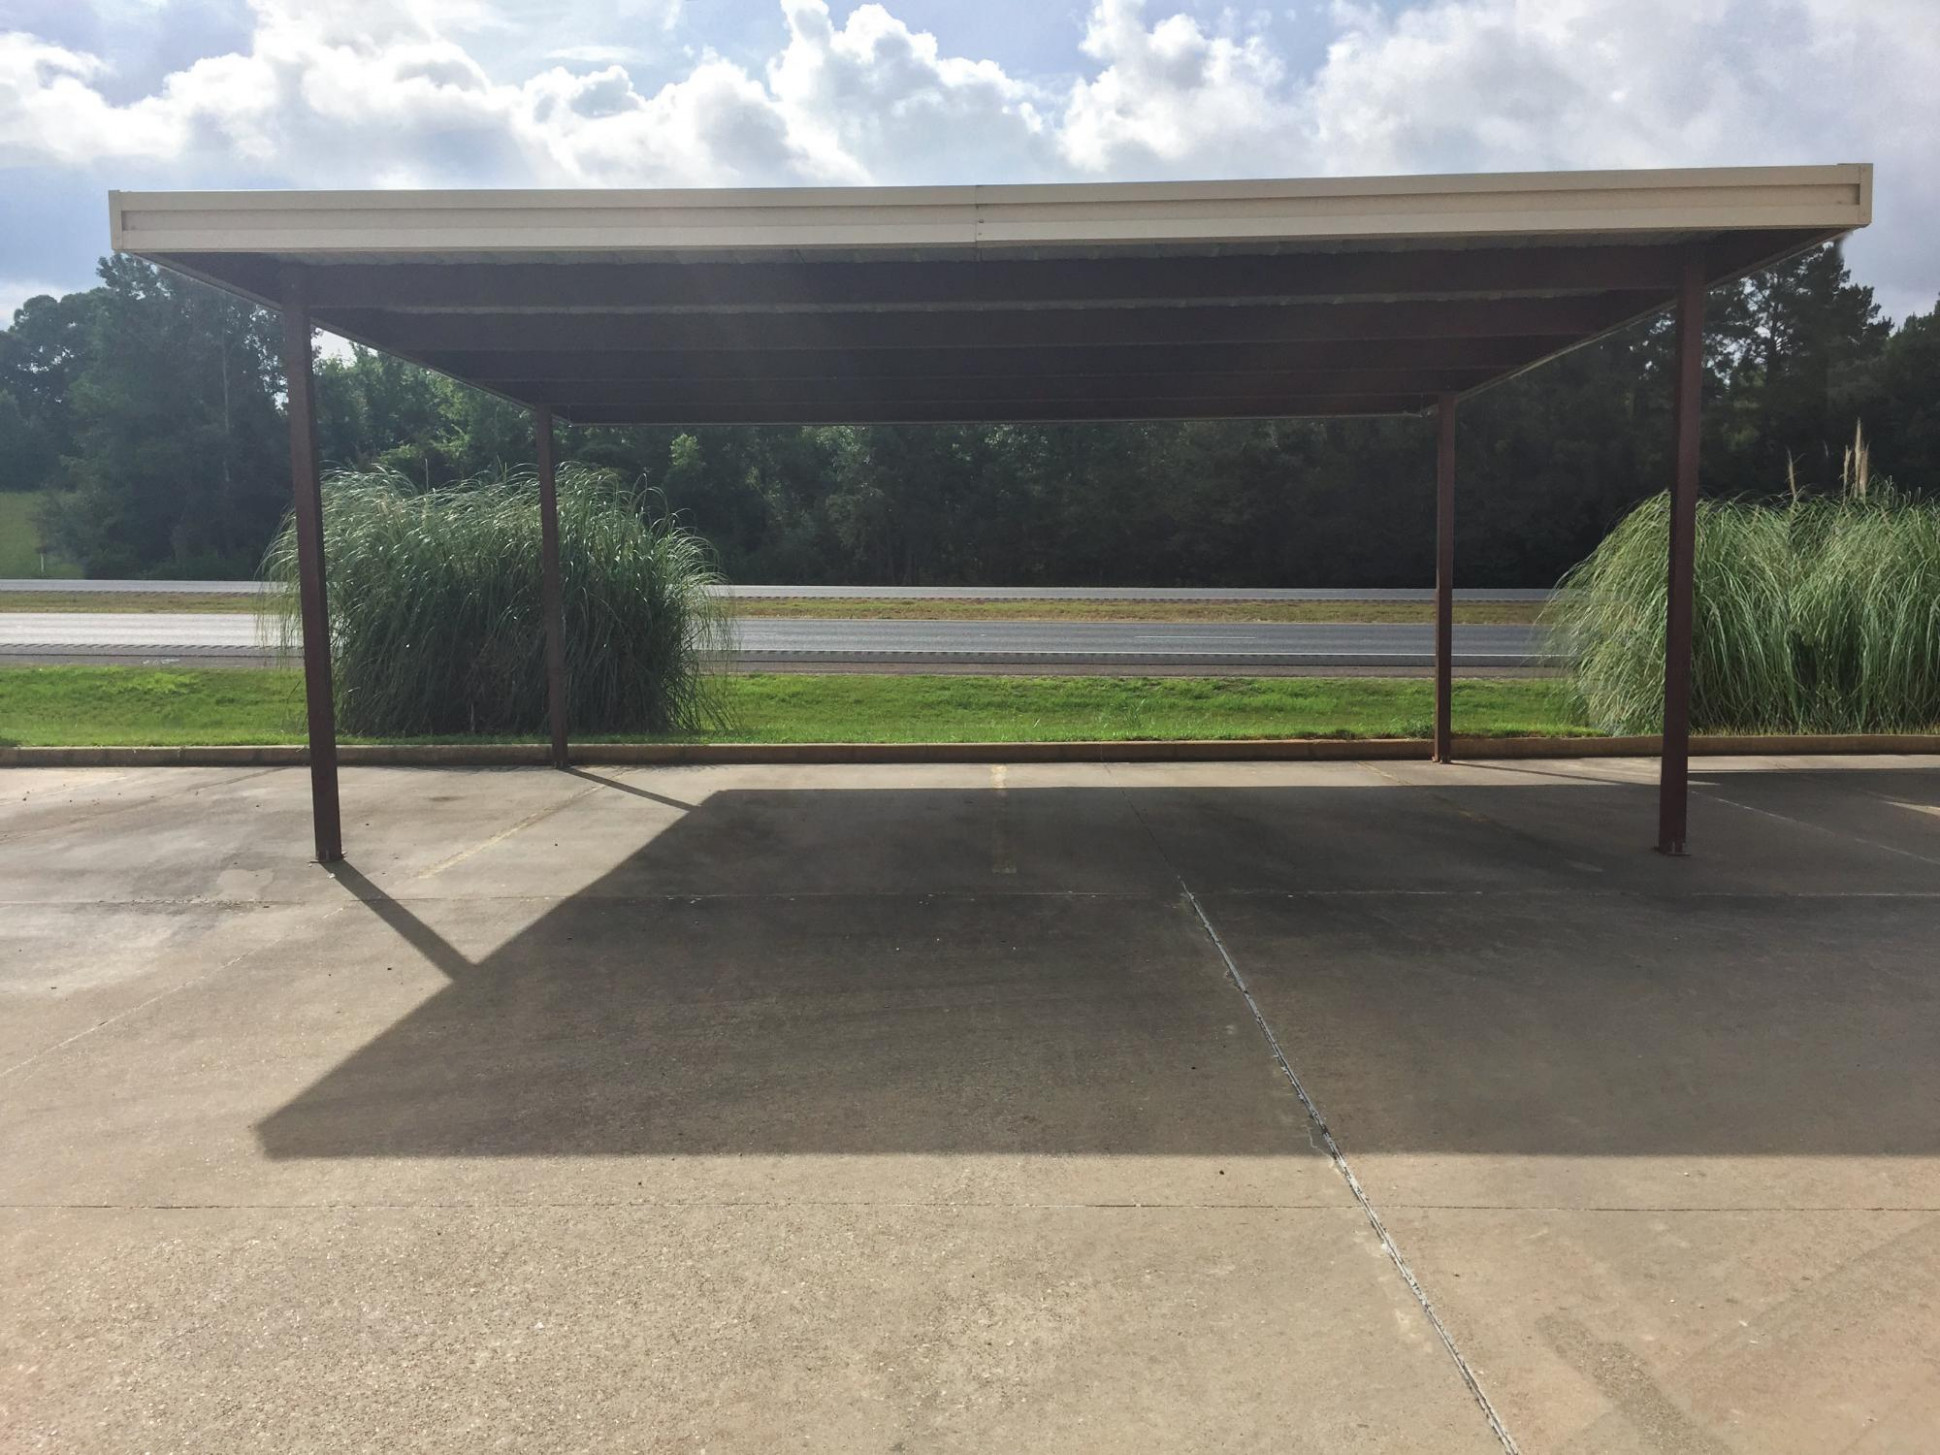 Carport 10' X 10' Mueller, Inc Do I Need Planning Permission For A Wooden Carport